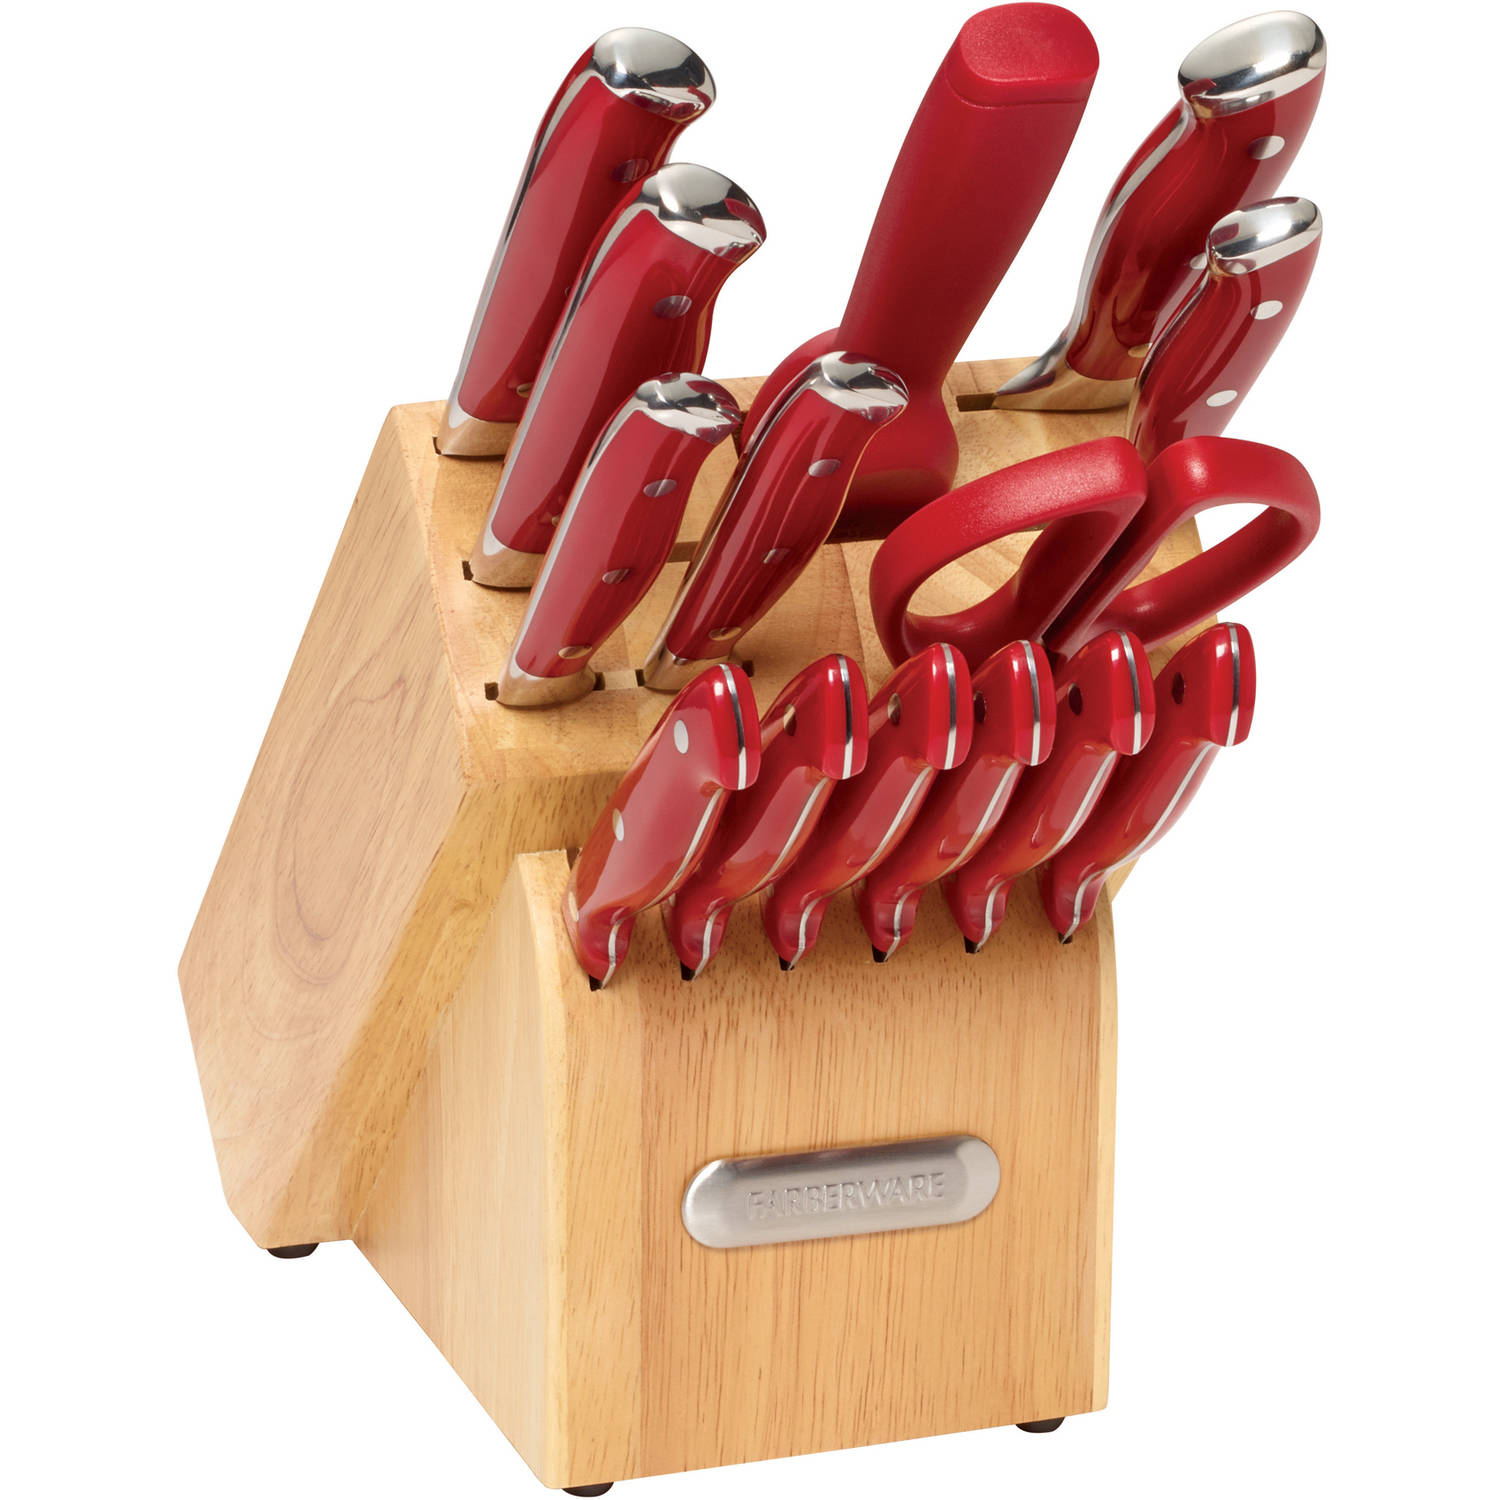 Farberware 15-Piece Forged Triple Riveted Cutlery Set, Red with EZ Angle Sharpening Steel